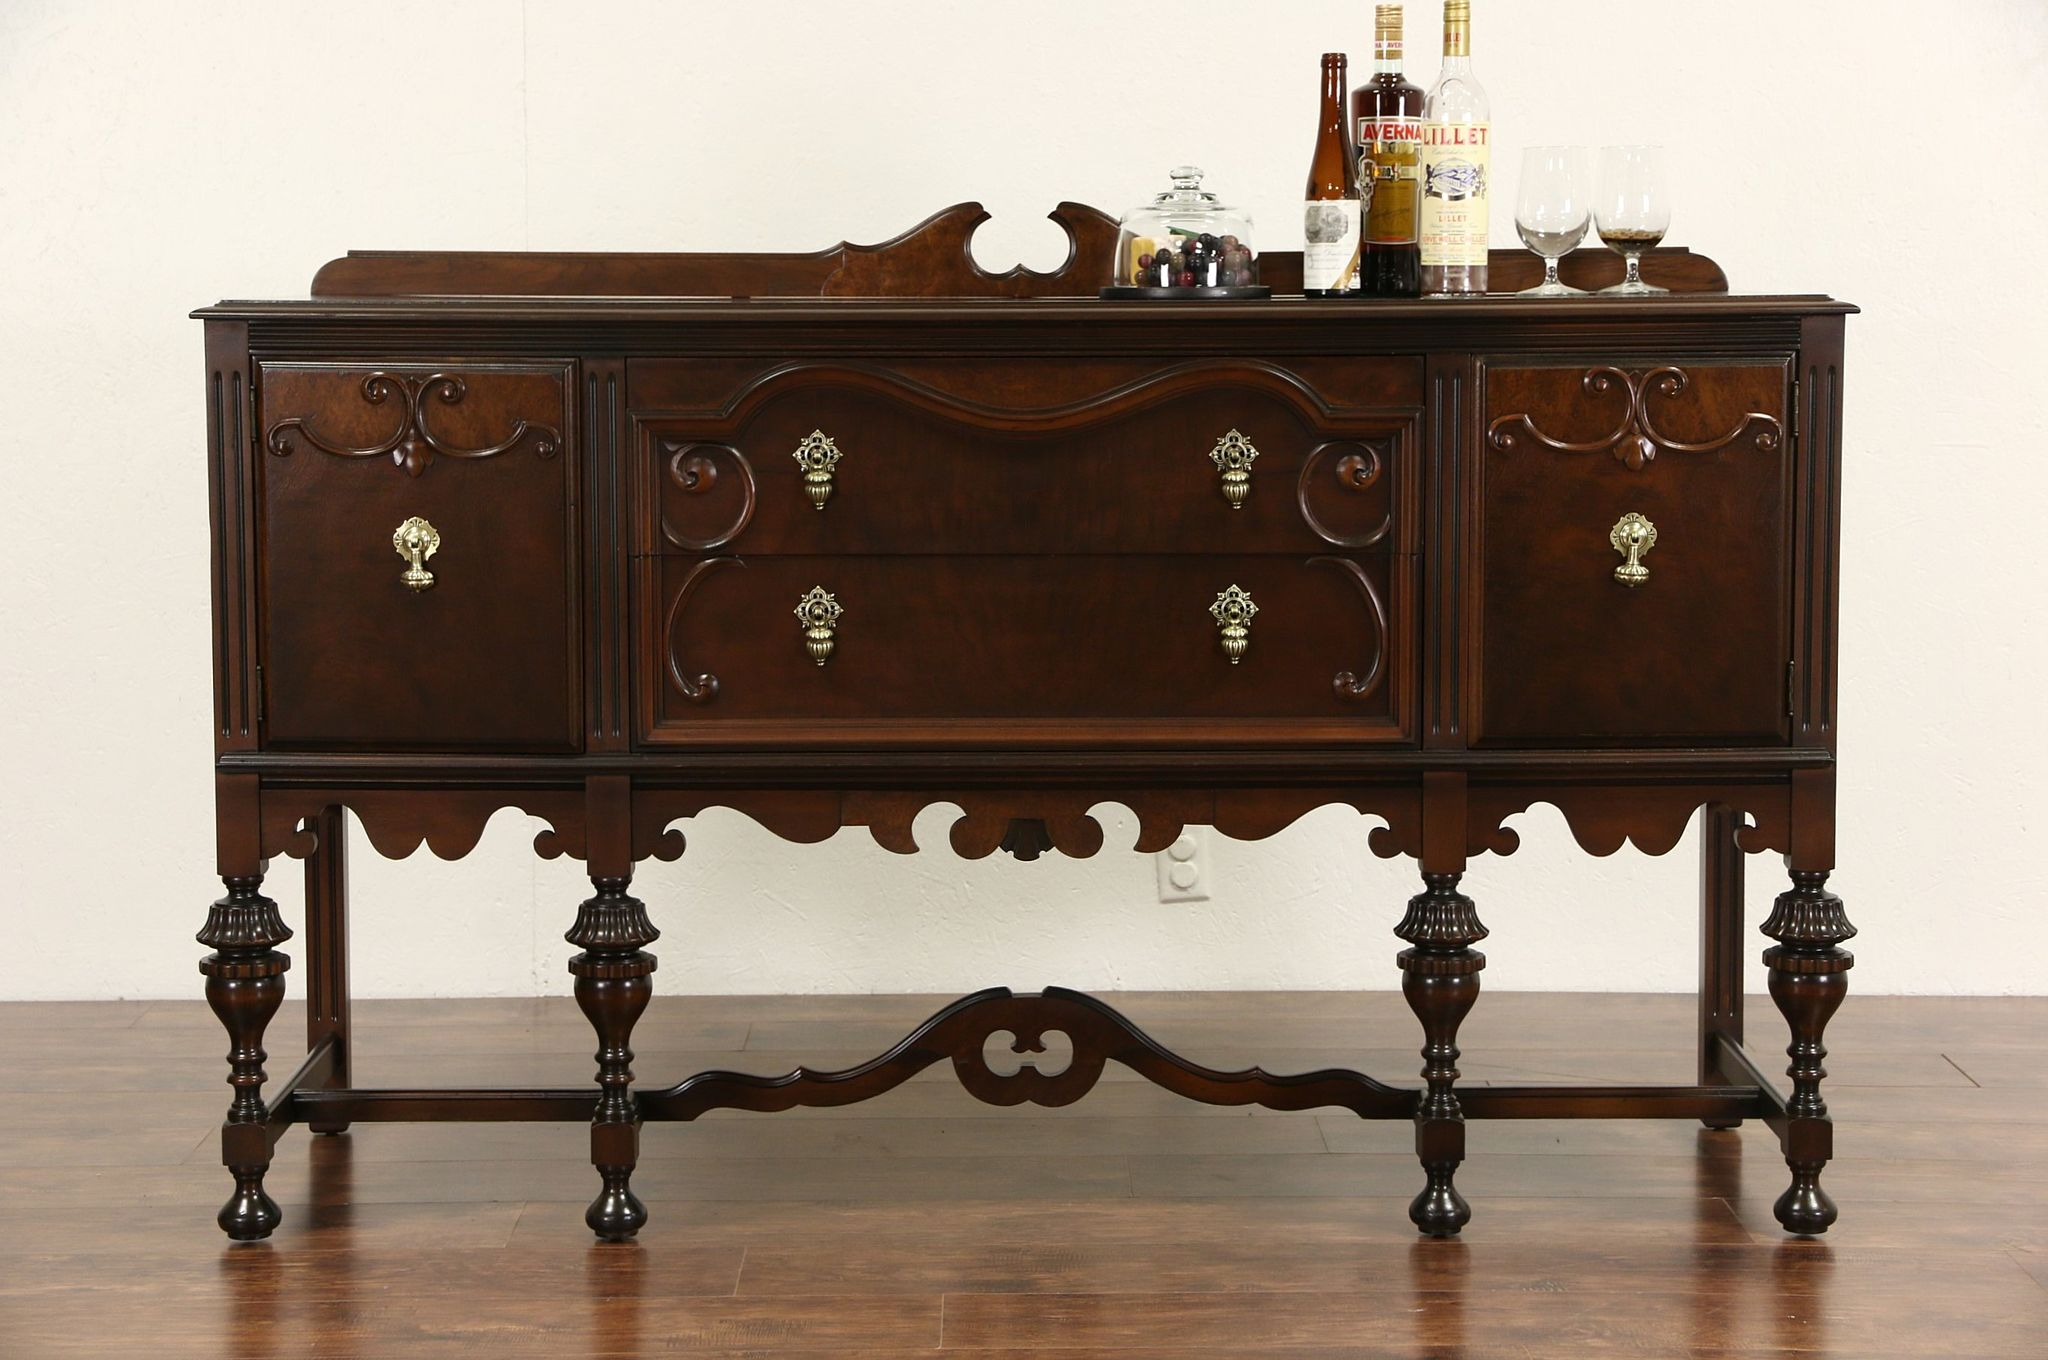 sold english tudor 1920 antique walnut sideboard server or buffet harp gallery antique furniture. Black Bedroom Furniture Sets. Home Design Ideas